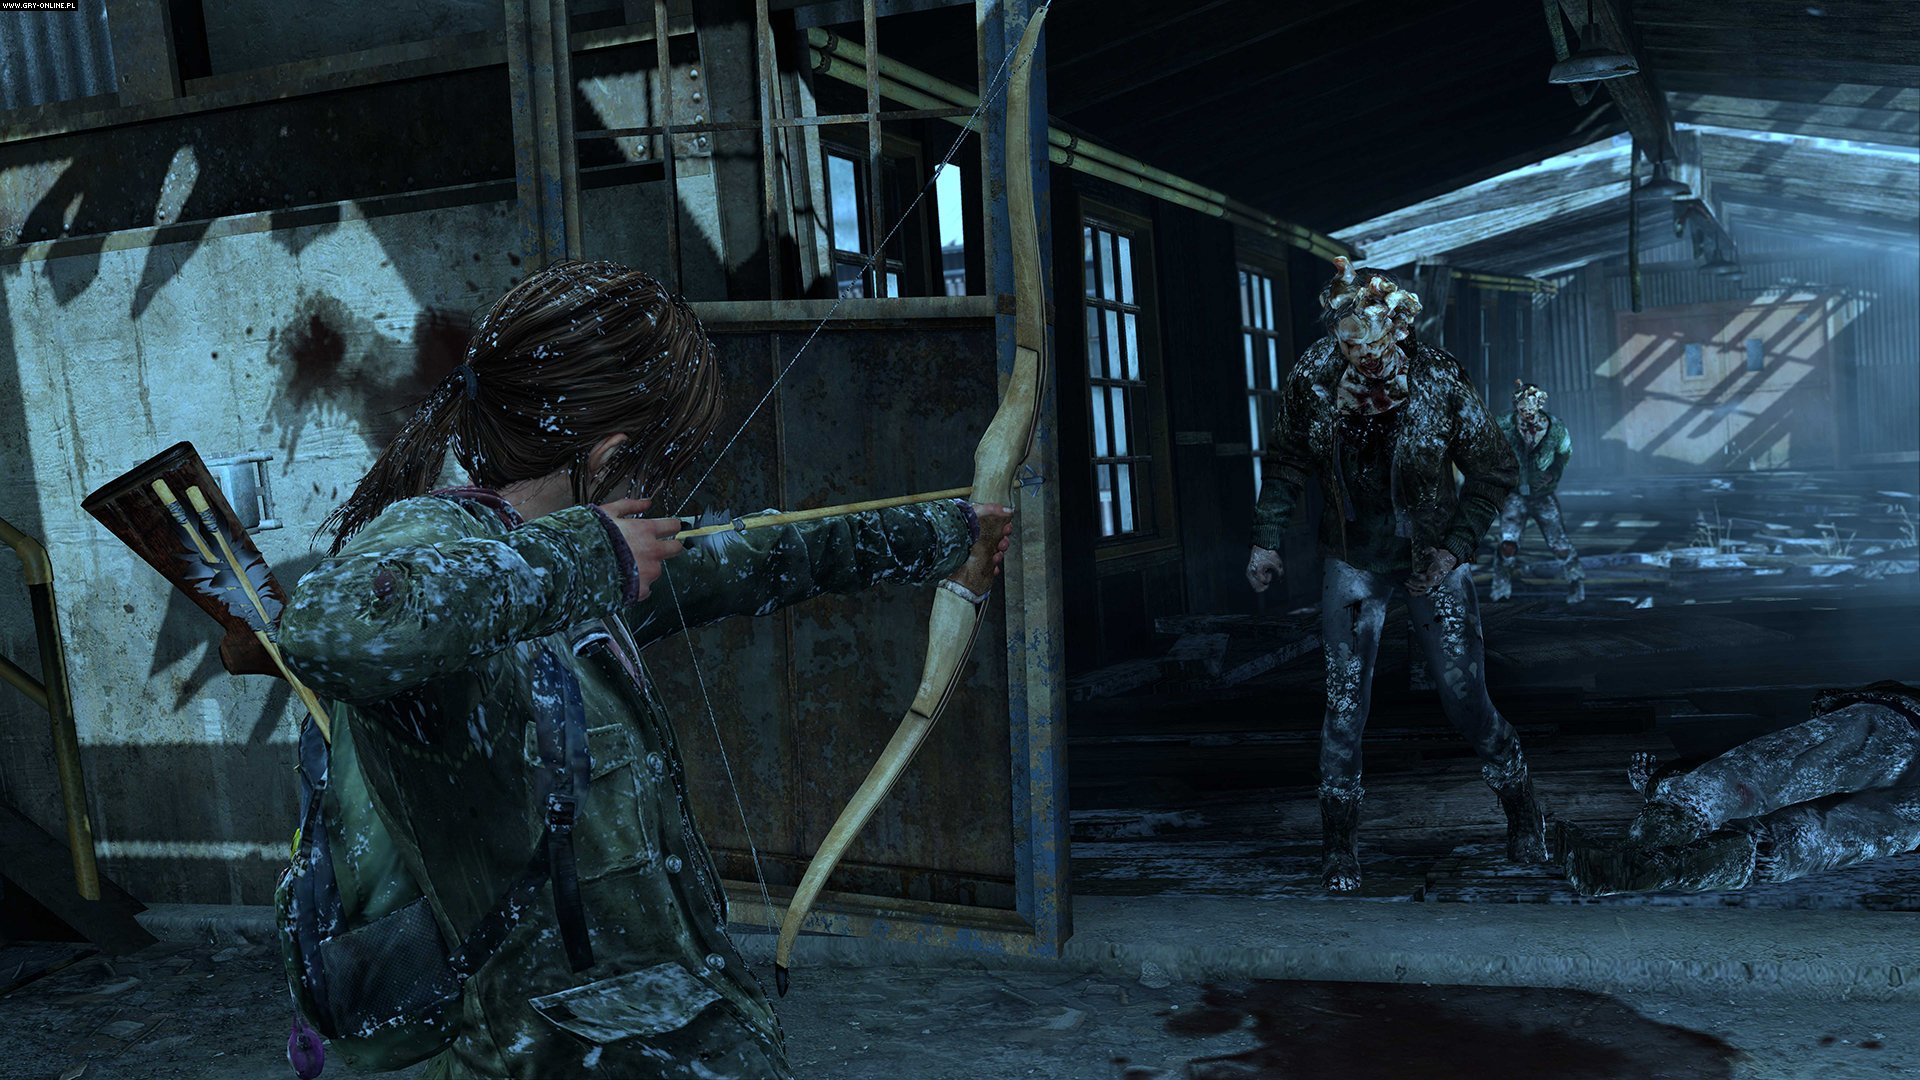 The Last of Us PS4 Games Image 17/201, Naughty Dog, Sony Interactive Entertainment